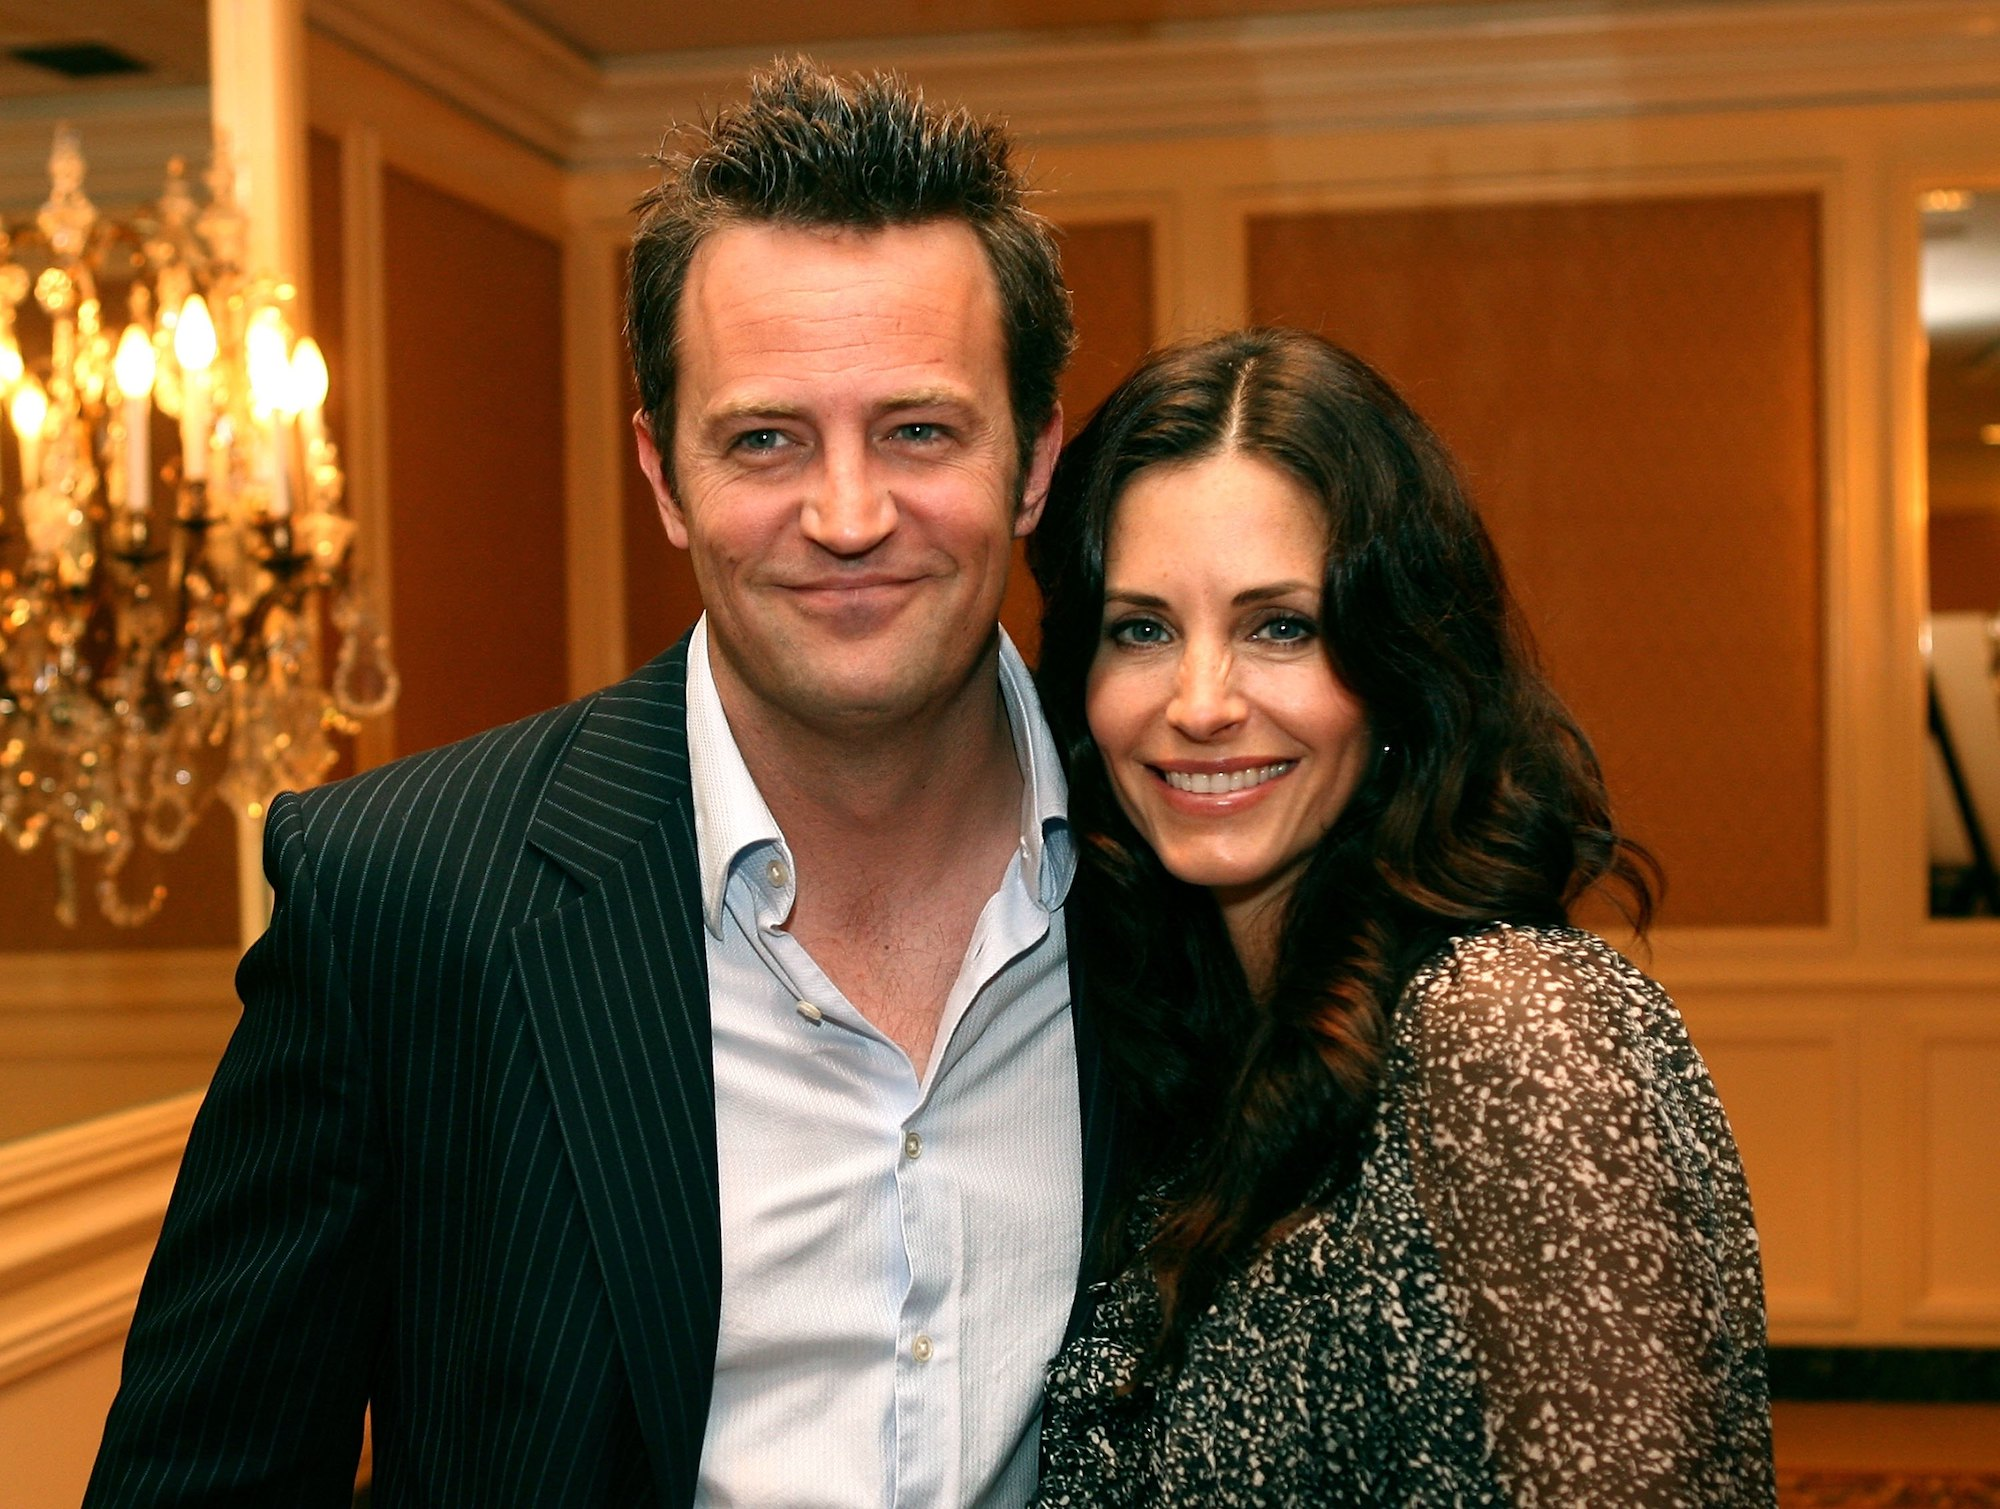 Matthew Perry and Courteney Cox at the AFI Associates luncheon on May 10, 2006.